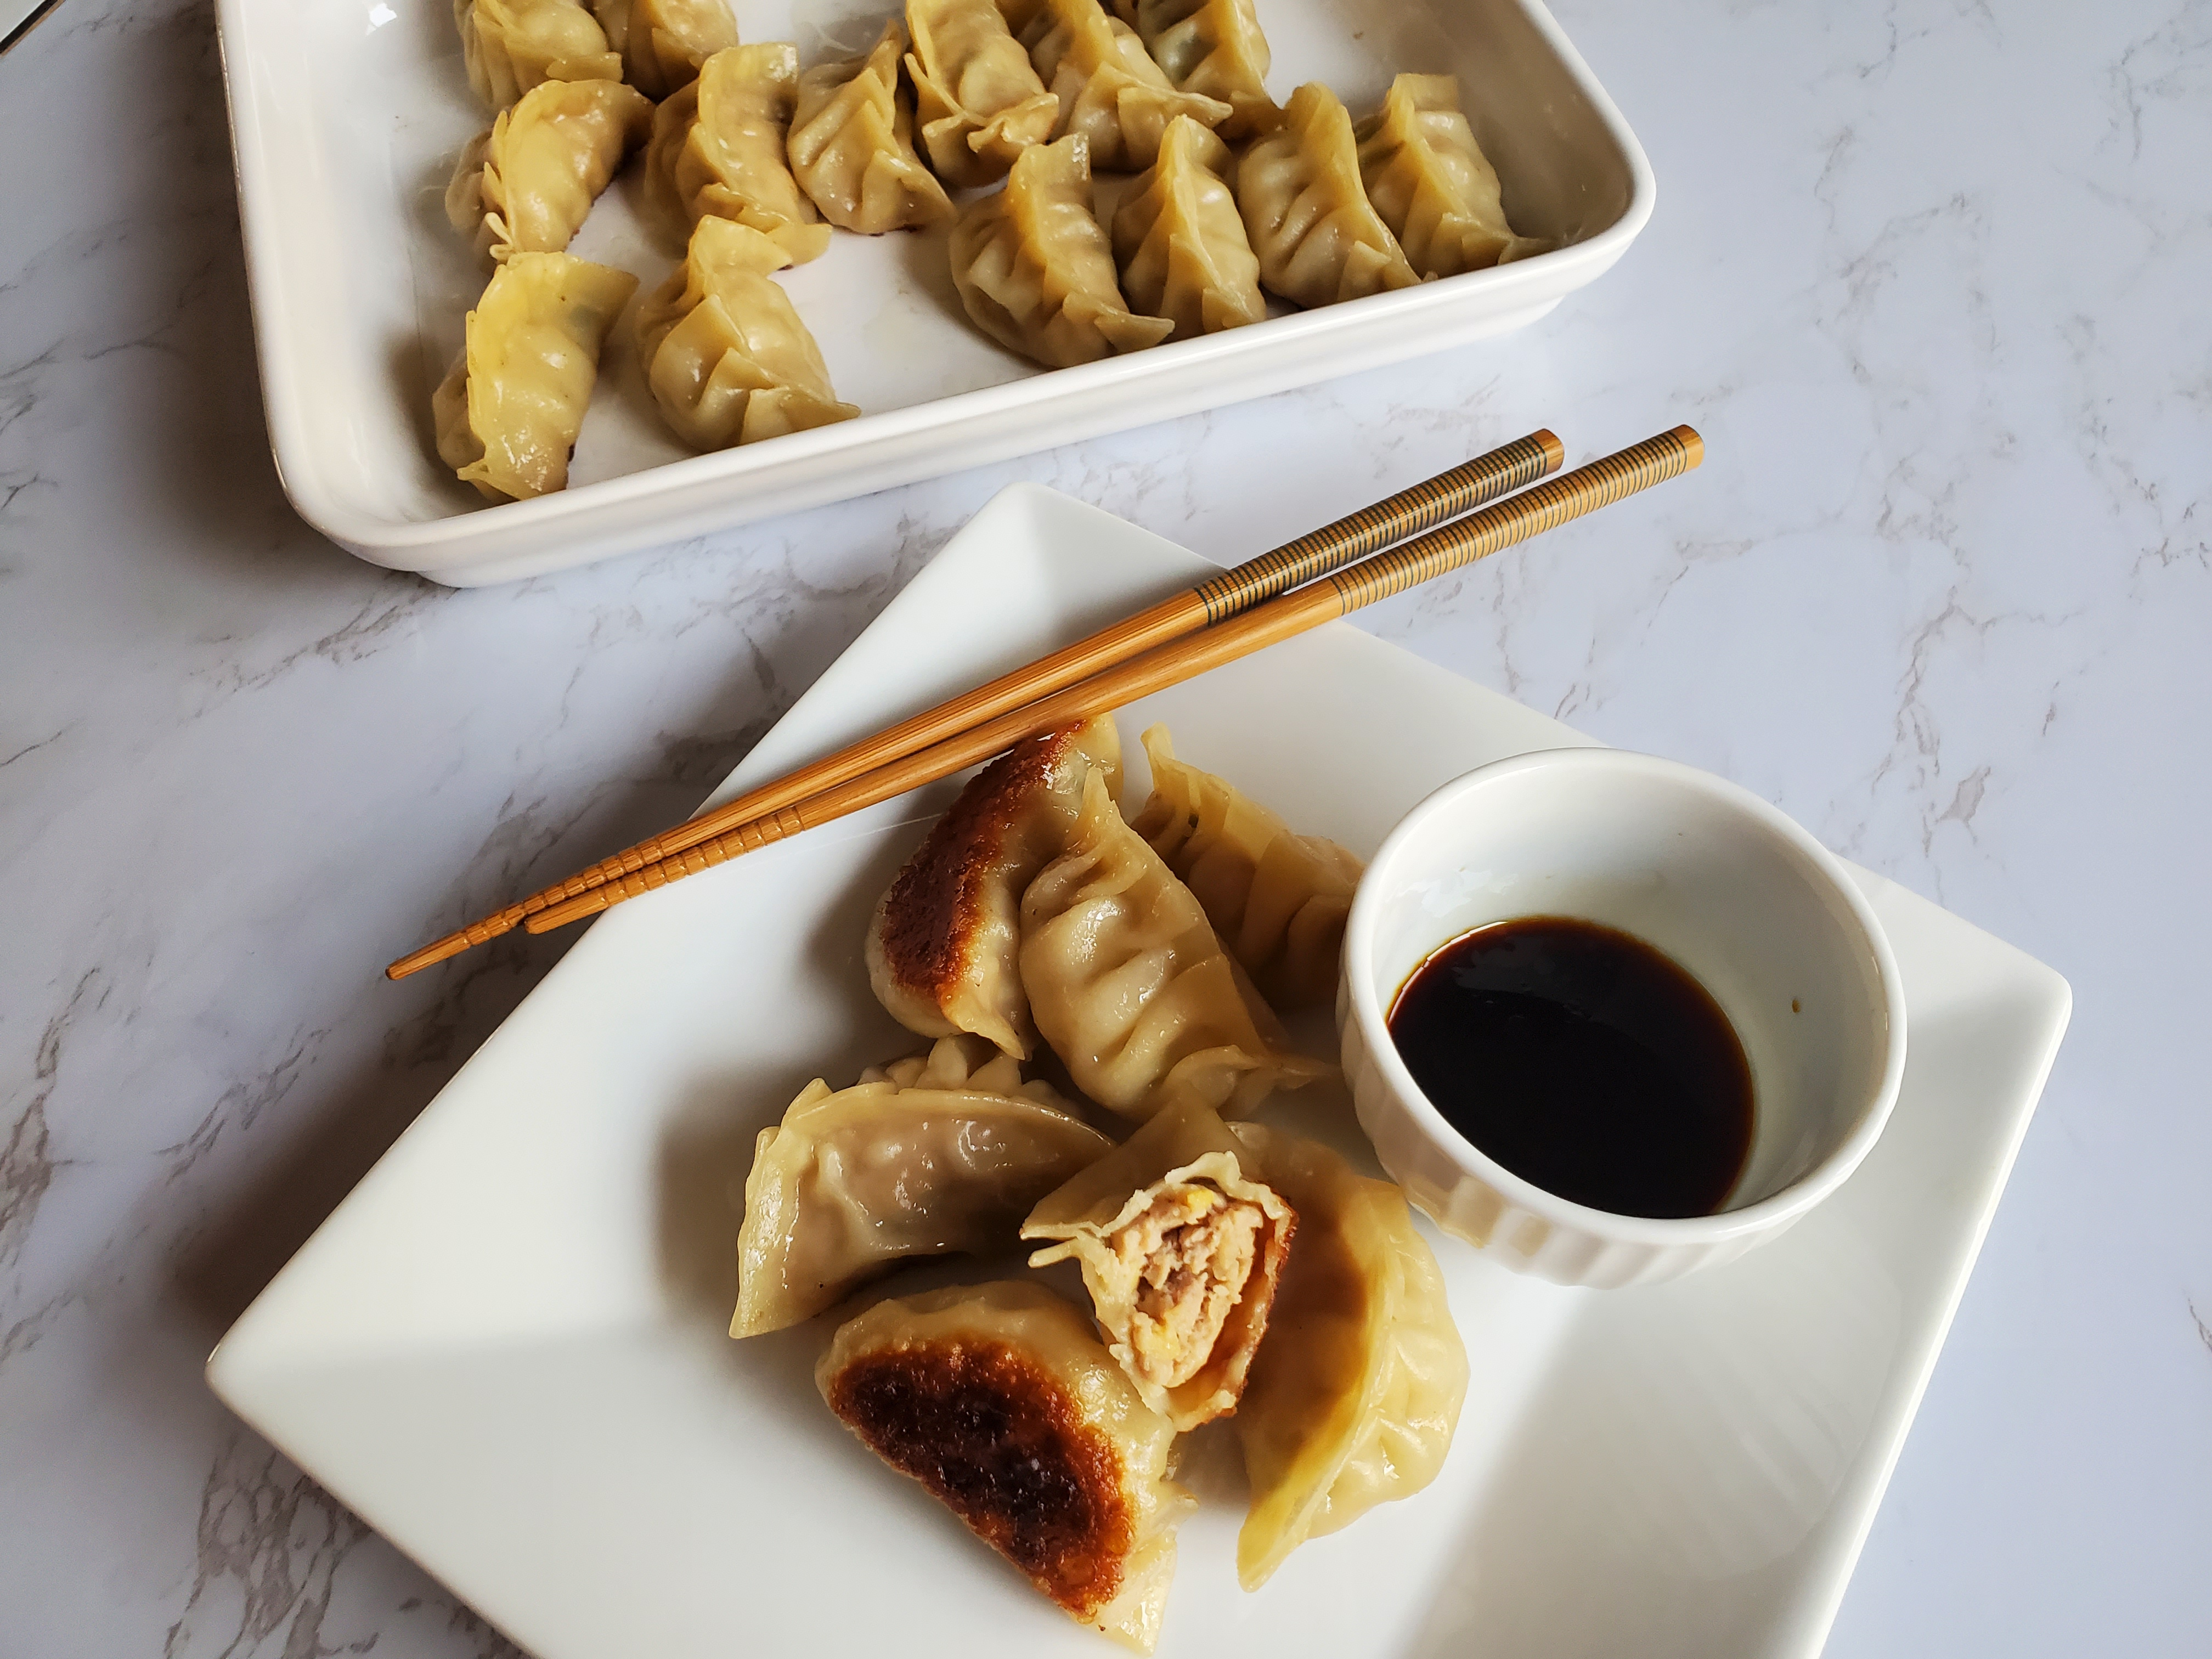 In the background, a picked over platter of potstickers. In the foreground is a square plate with a round cup of dark brown dumpling sauce surrounded by potstickers, one has a bite taken out. A pair of chopsticks rests on the upper left.